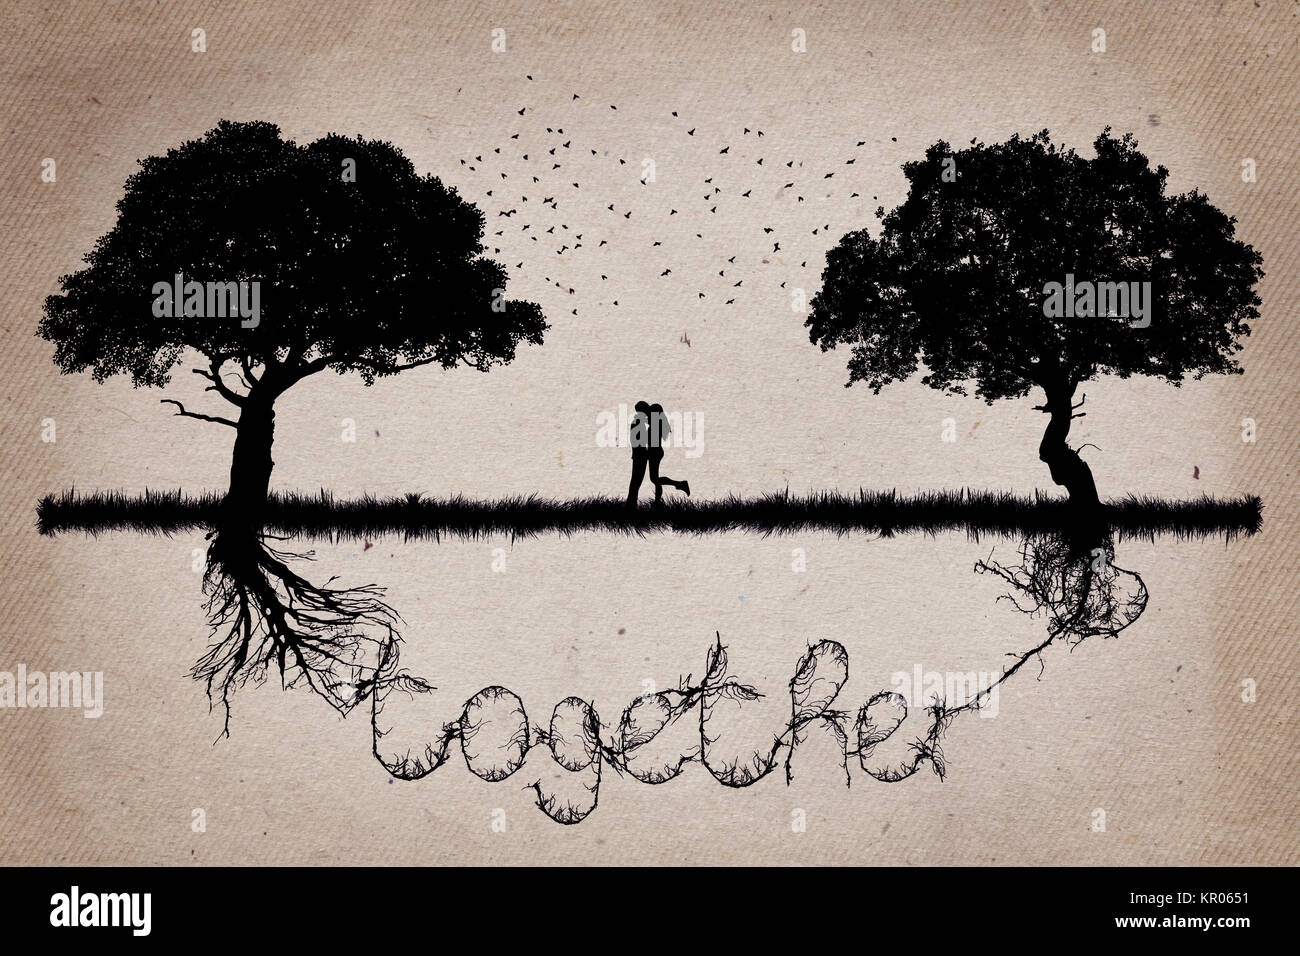 together 4 - Stock Image